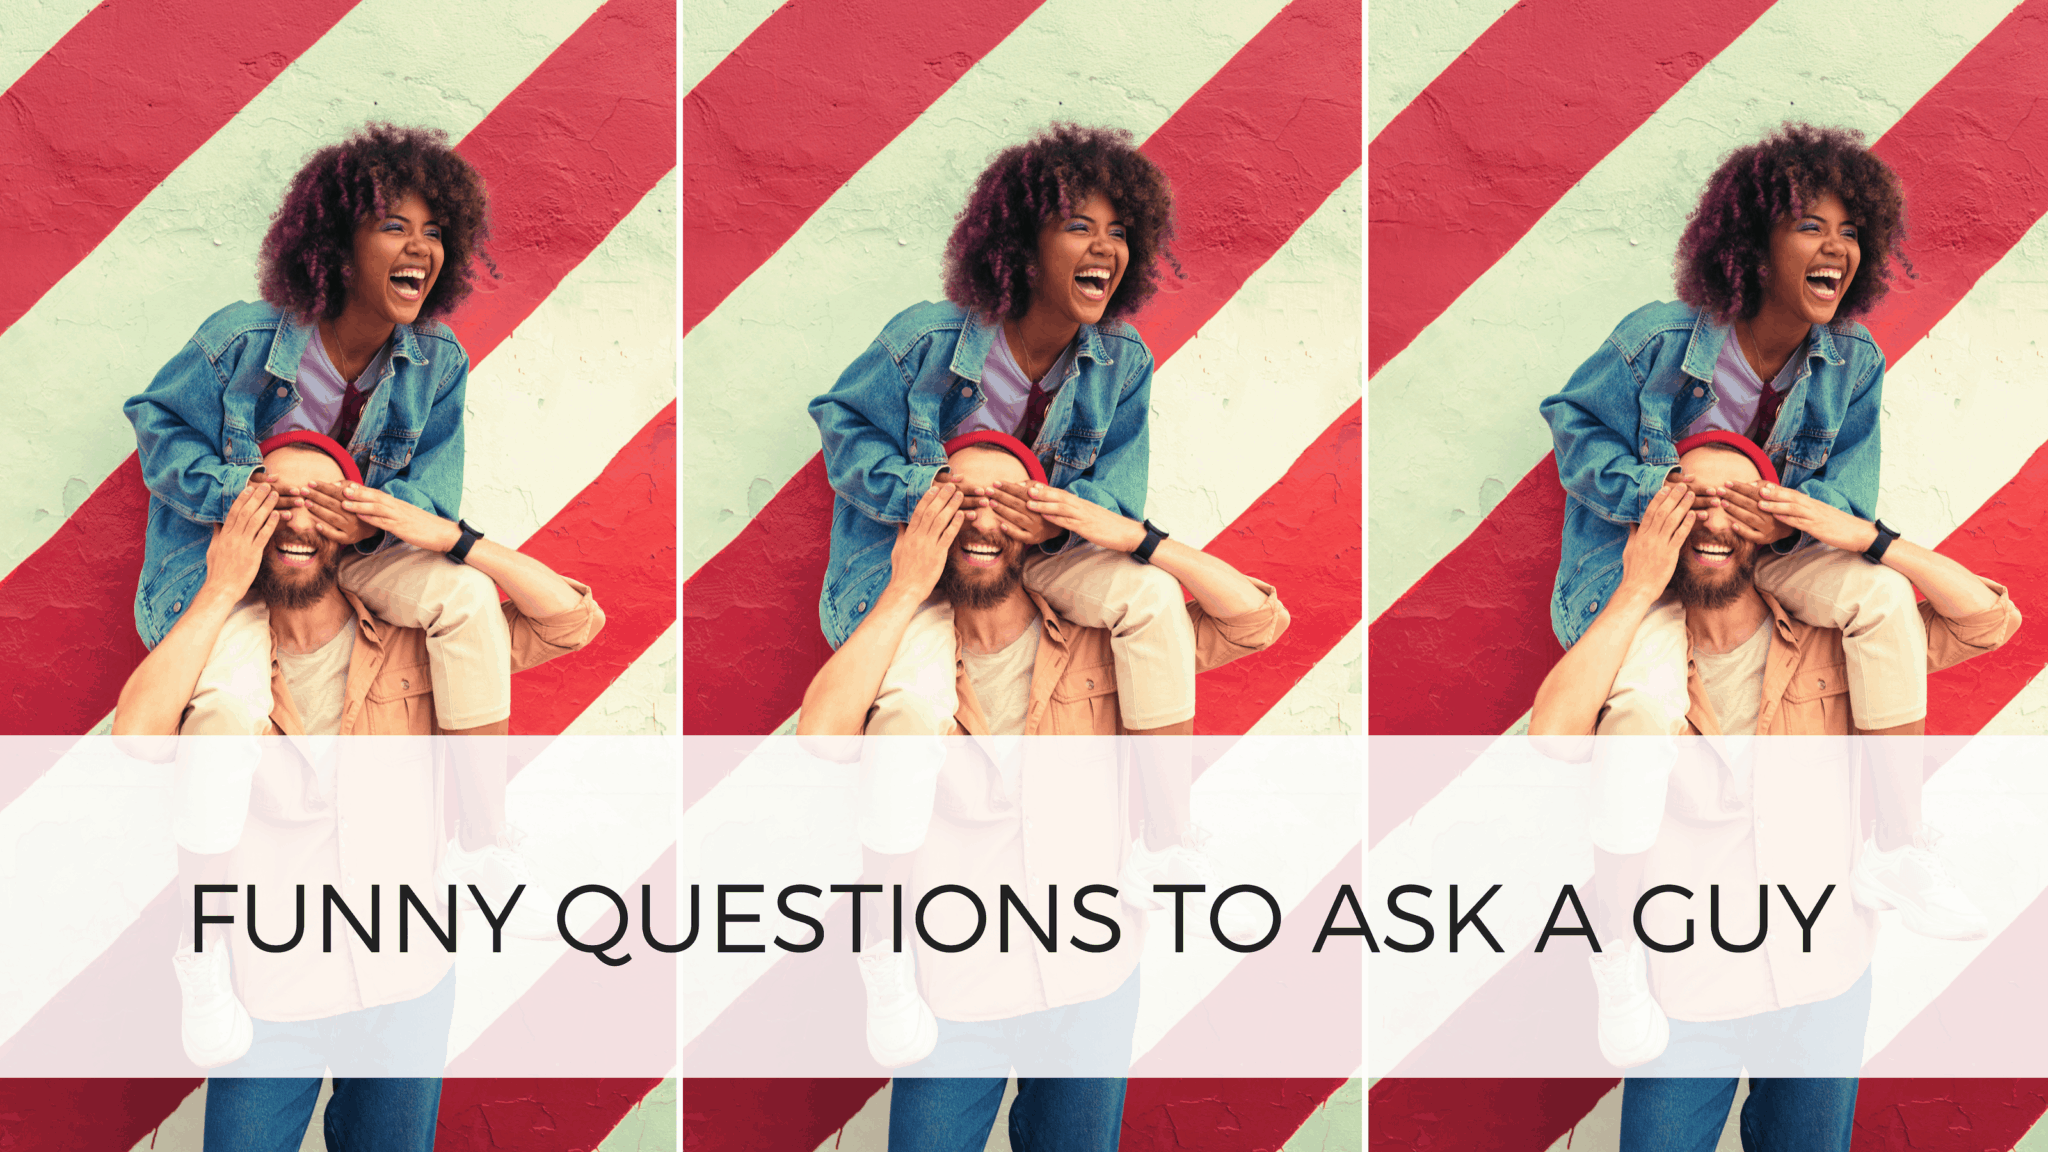 100 Funny Questions To Ask A Guy - By Sophia Lee